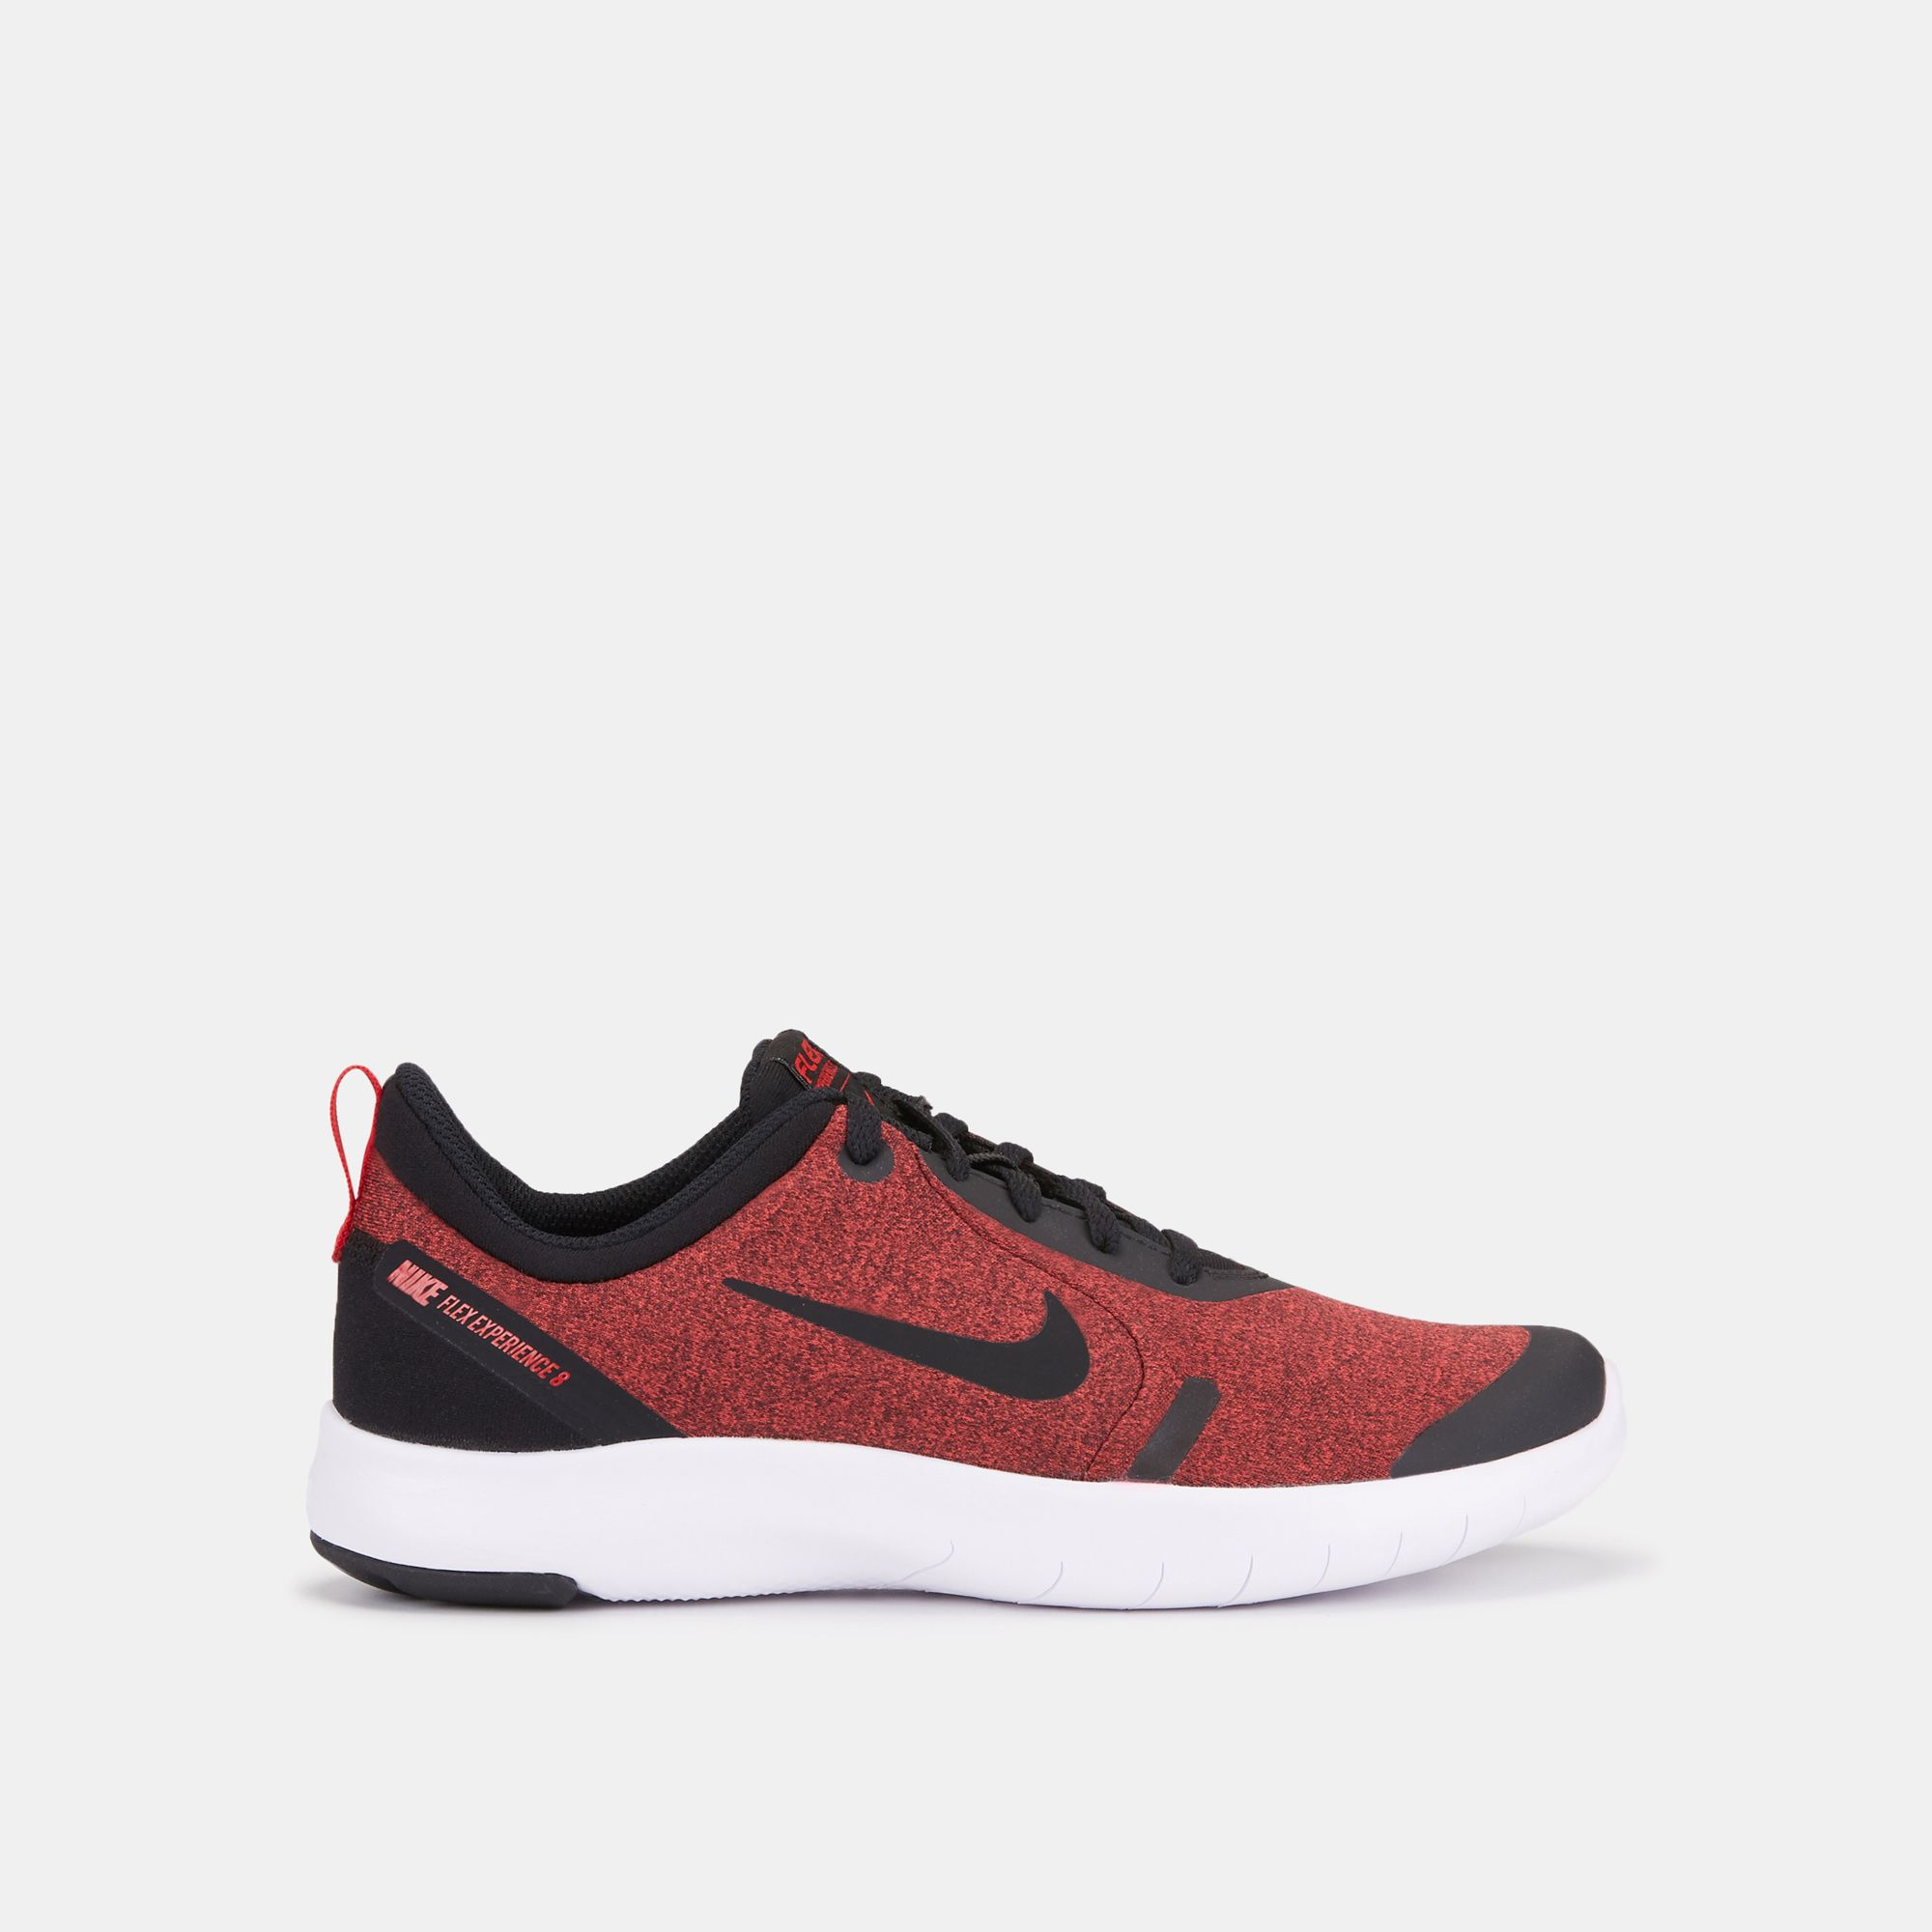 promo code fe5bb f8721 Nike Kids  Flex Experience RN Shoe (Older Kids)   Nike Shoes   Nike ...